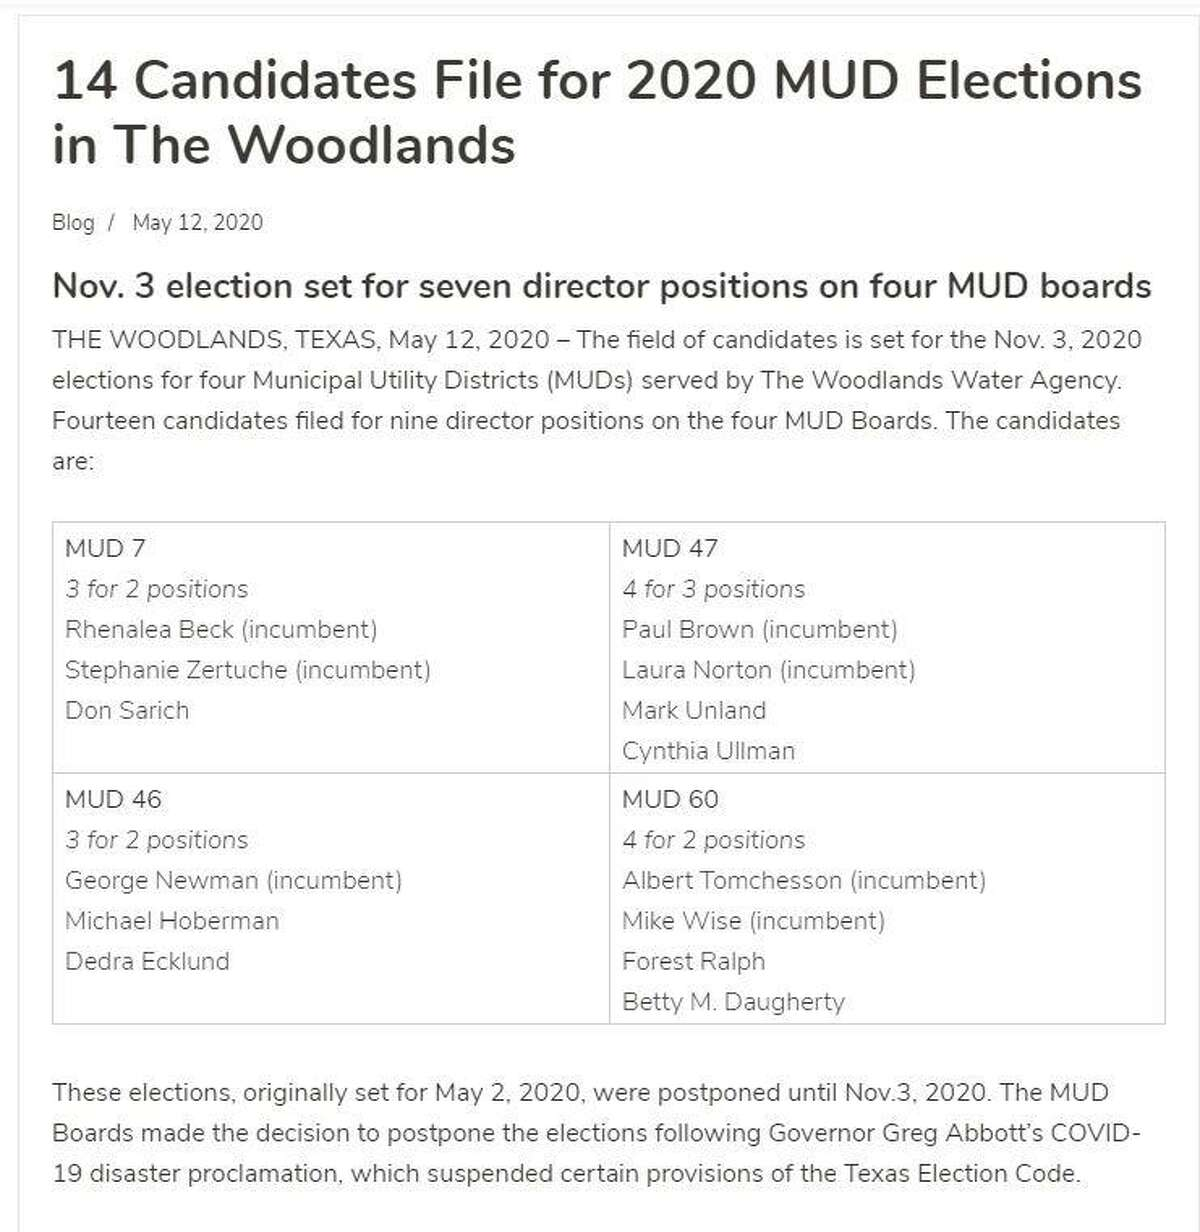 Candidates for four local municipal utility districts will be on the Nov. 3 ballot in a rare occurrence in Texas elections. Normally, MUD elections are hosted in May each year however complications from the COVID-19 pandemic forced the state to delay those elections until November.